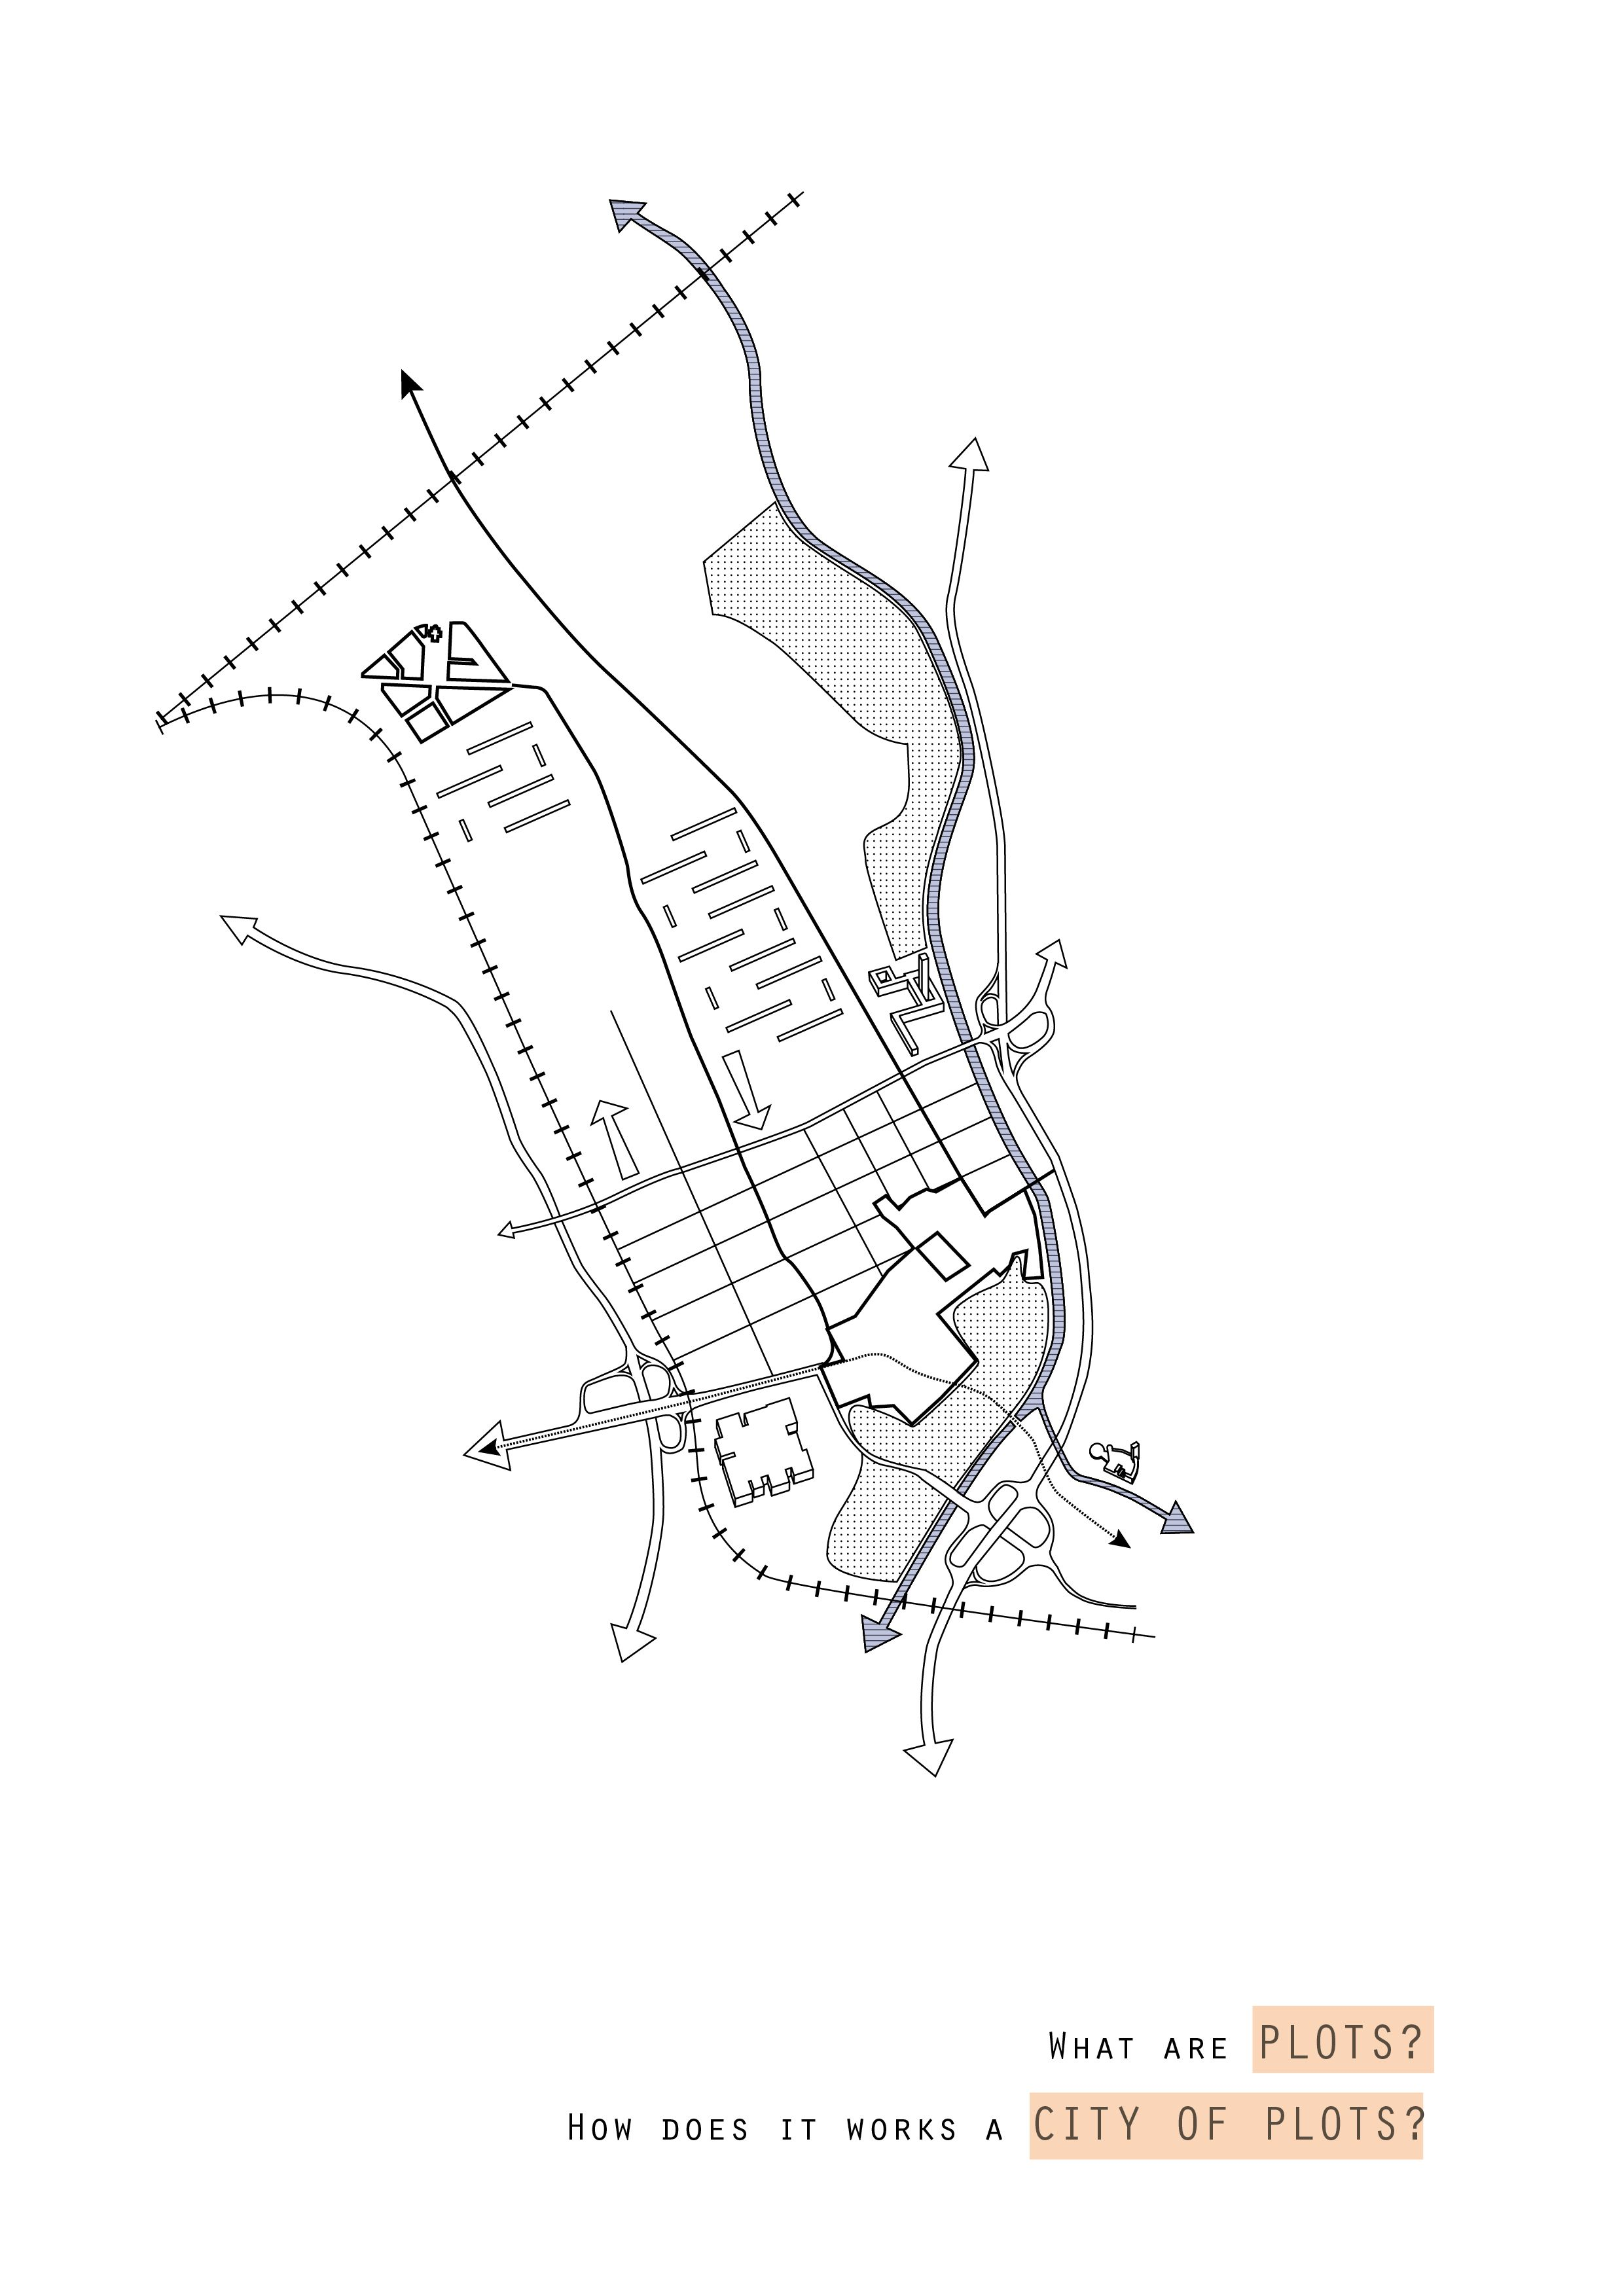 small resolution of urban analysis of ostrava city of plots image by toon de keyser